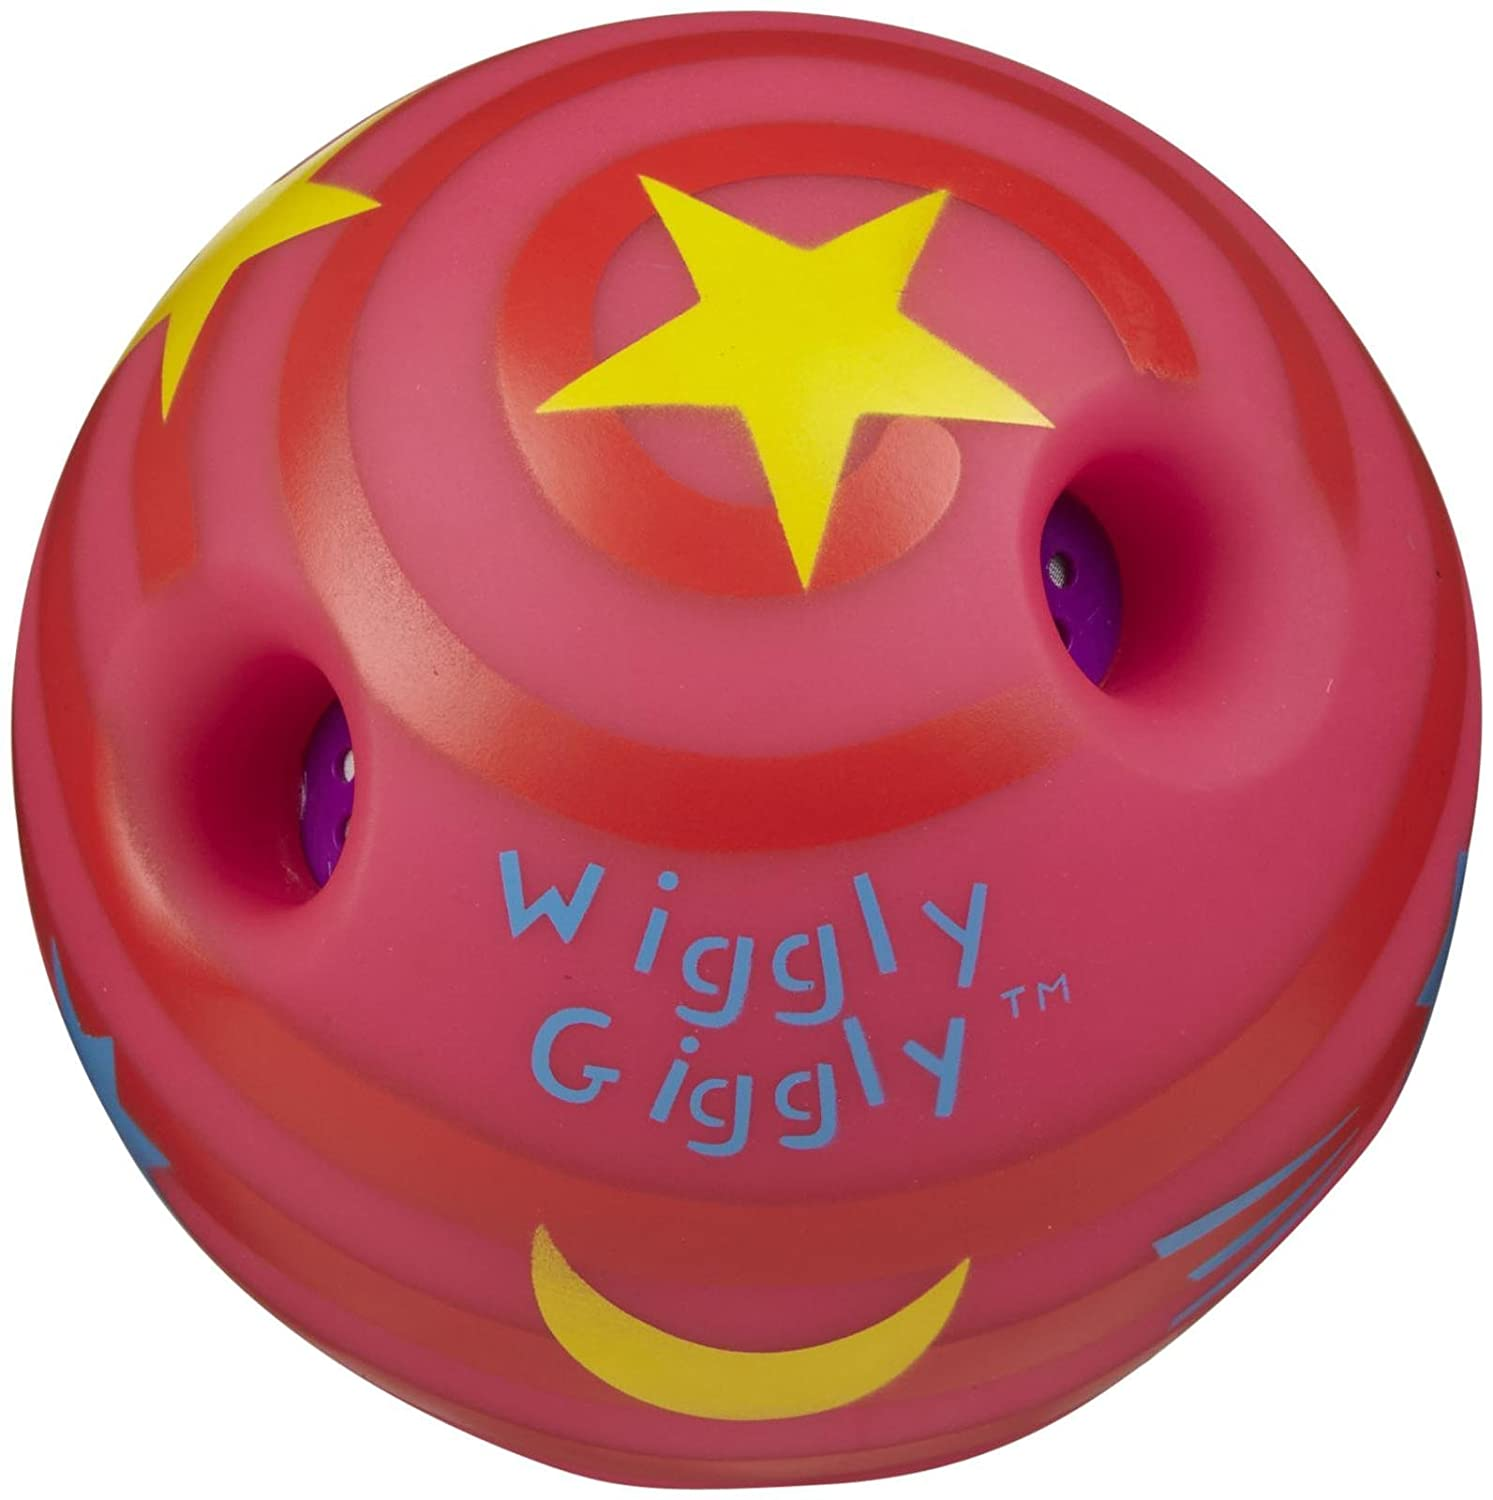 Amazon.com: Large Wiggly Giggly Ball by Toysmith (assorted colors ...